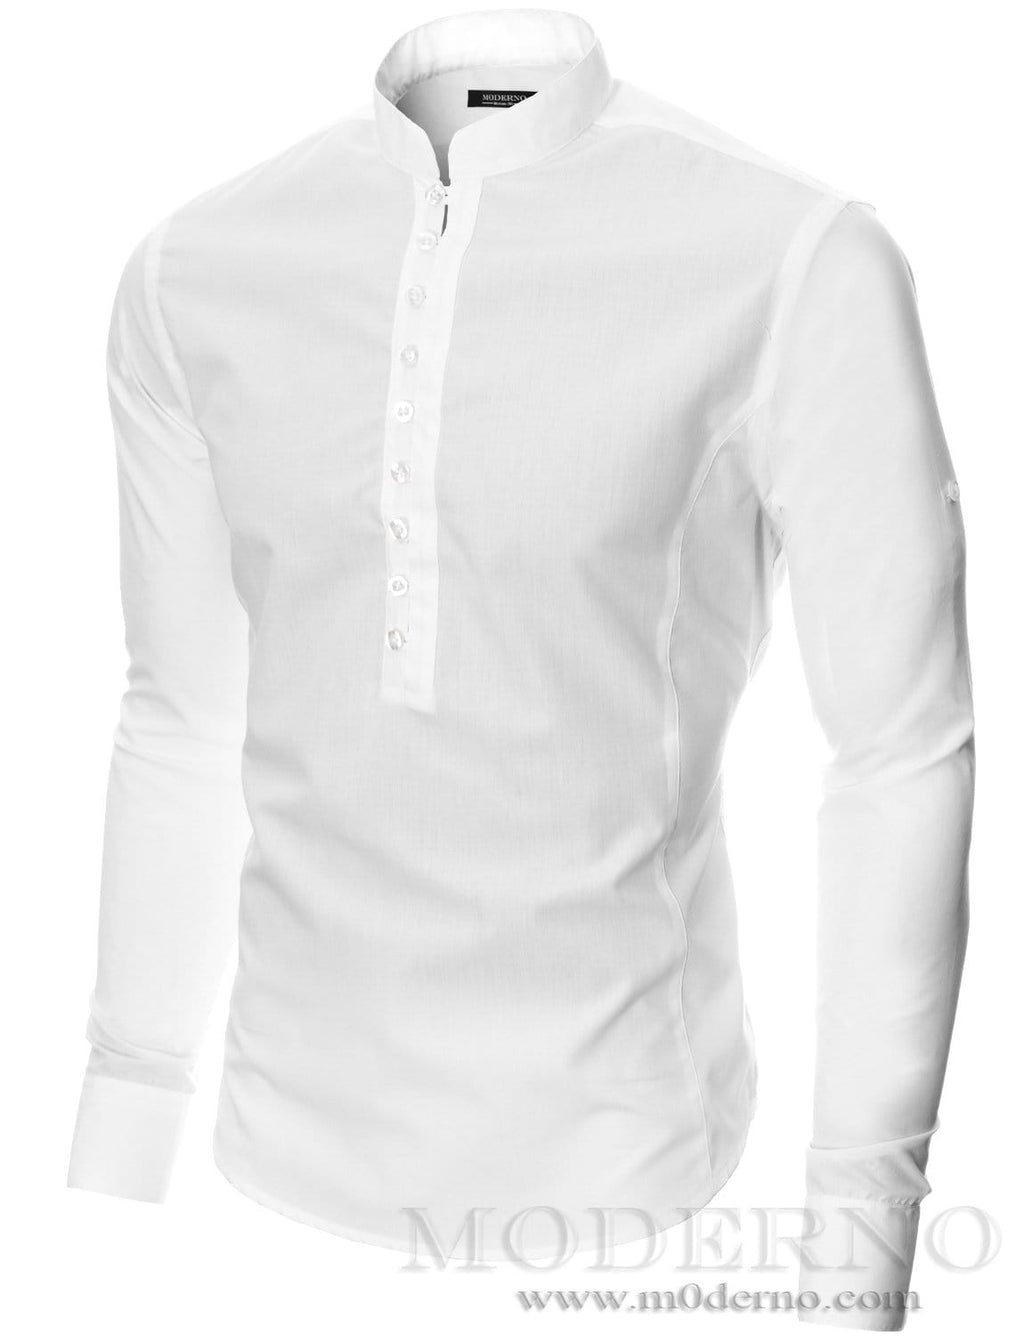 Mens button-down shirt white (MOD1431LS) - MODERNO